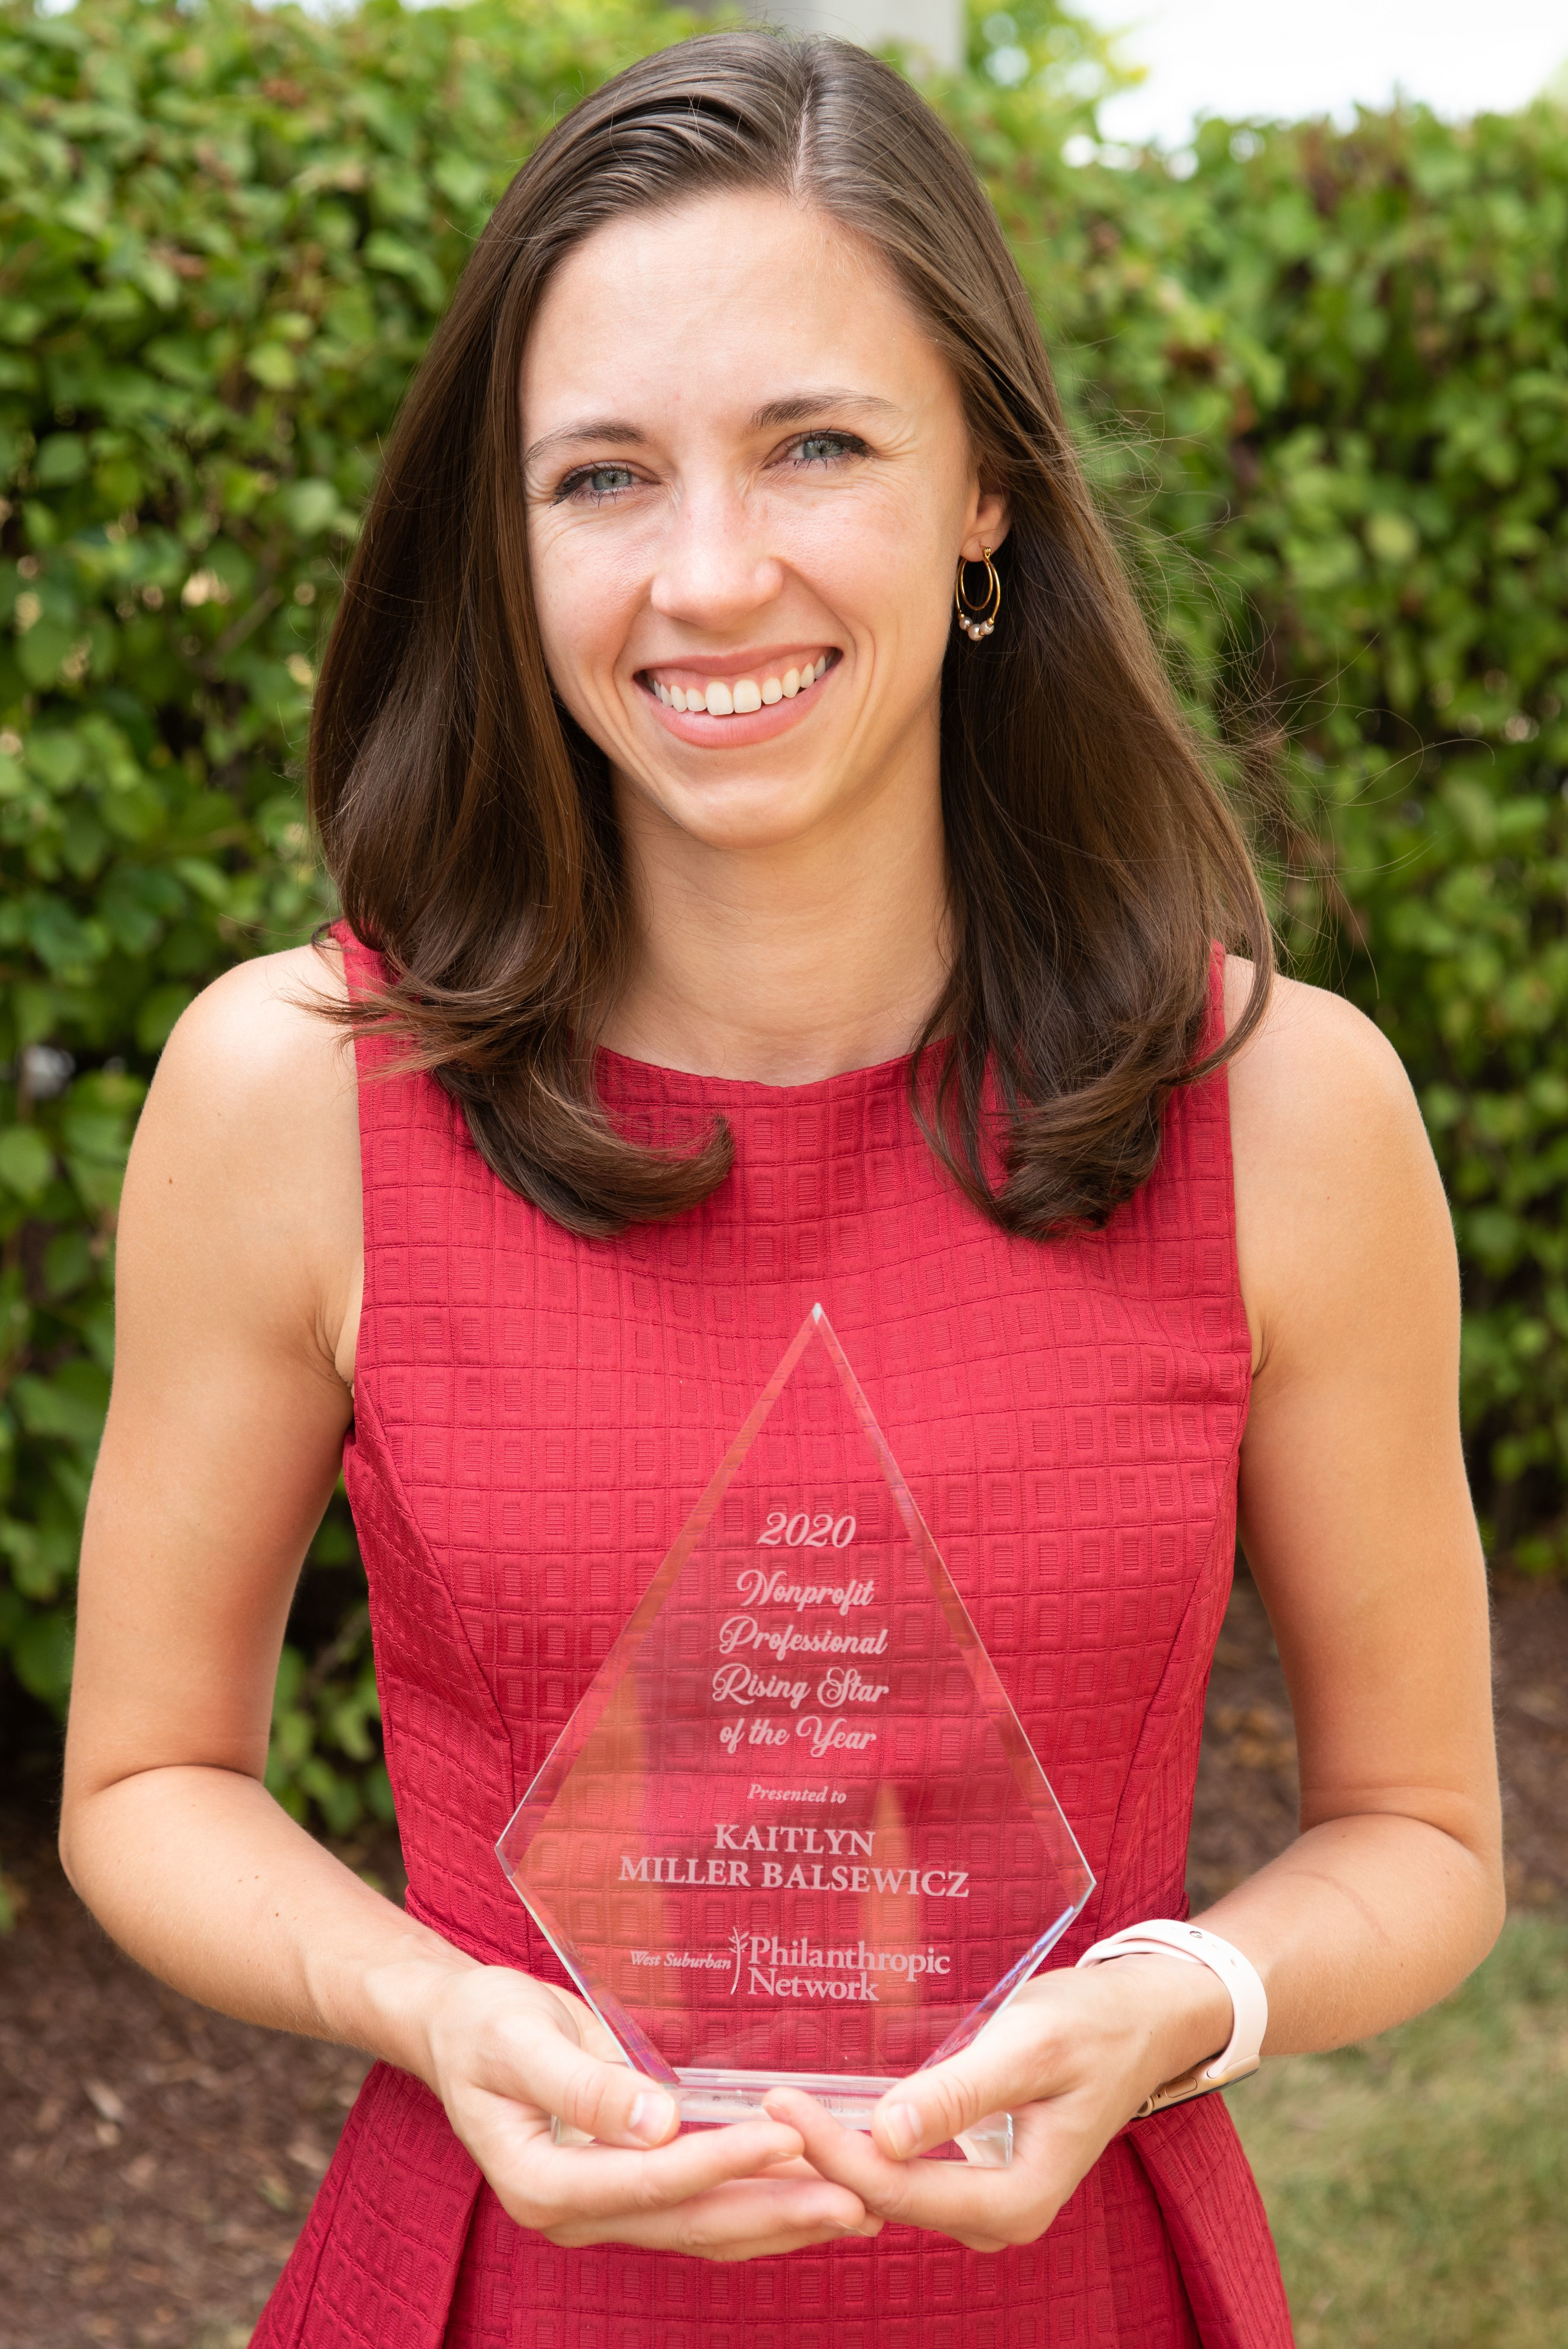 Kait Balsewicz of DuPage Foundation Named Rising Star by West Suburban Philanthropic Network